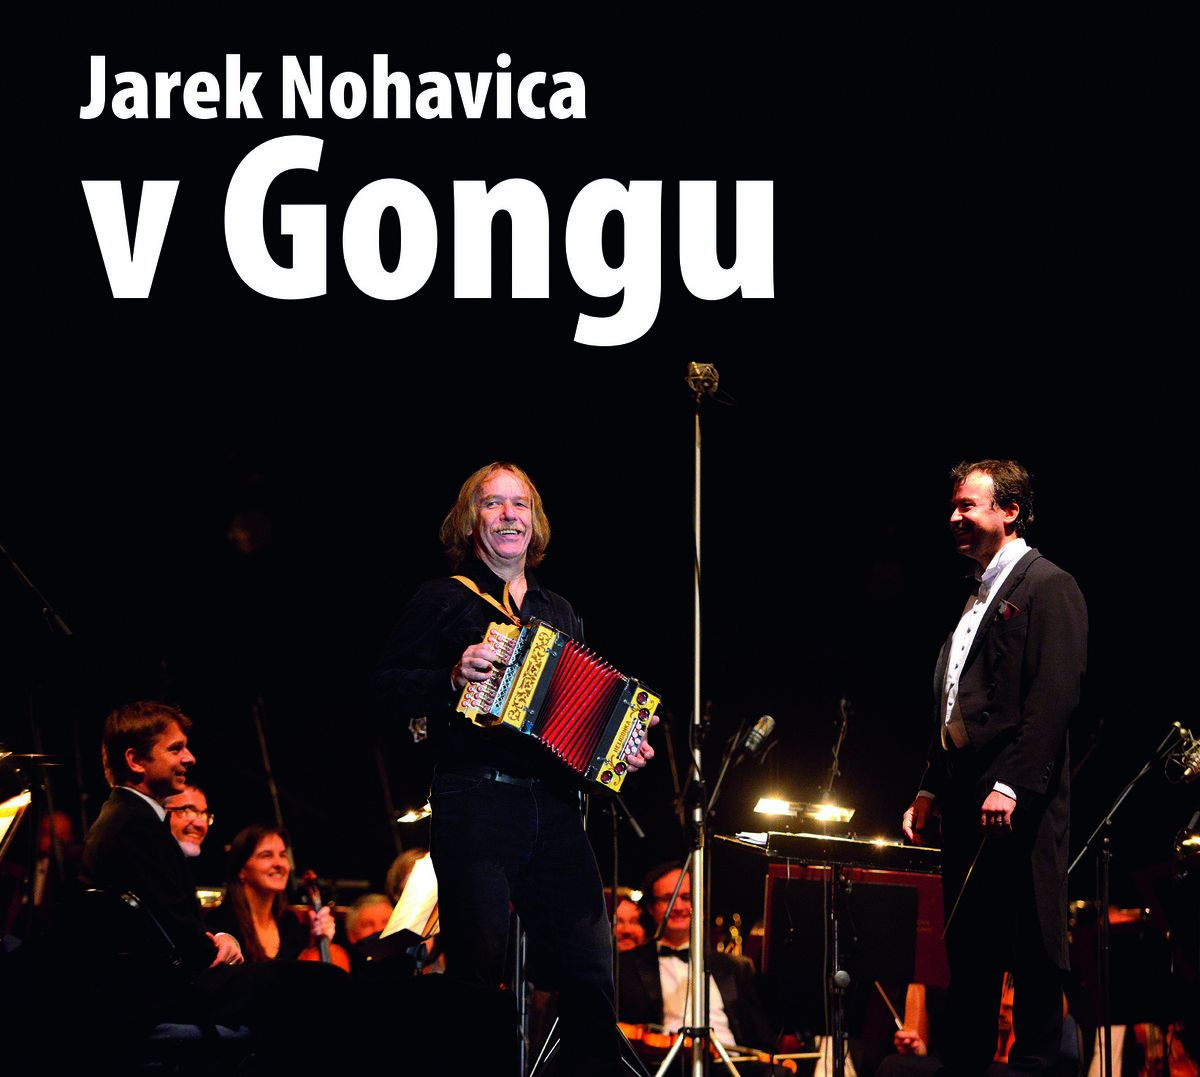 V gongu - CD + DVD